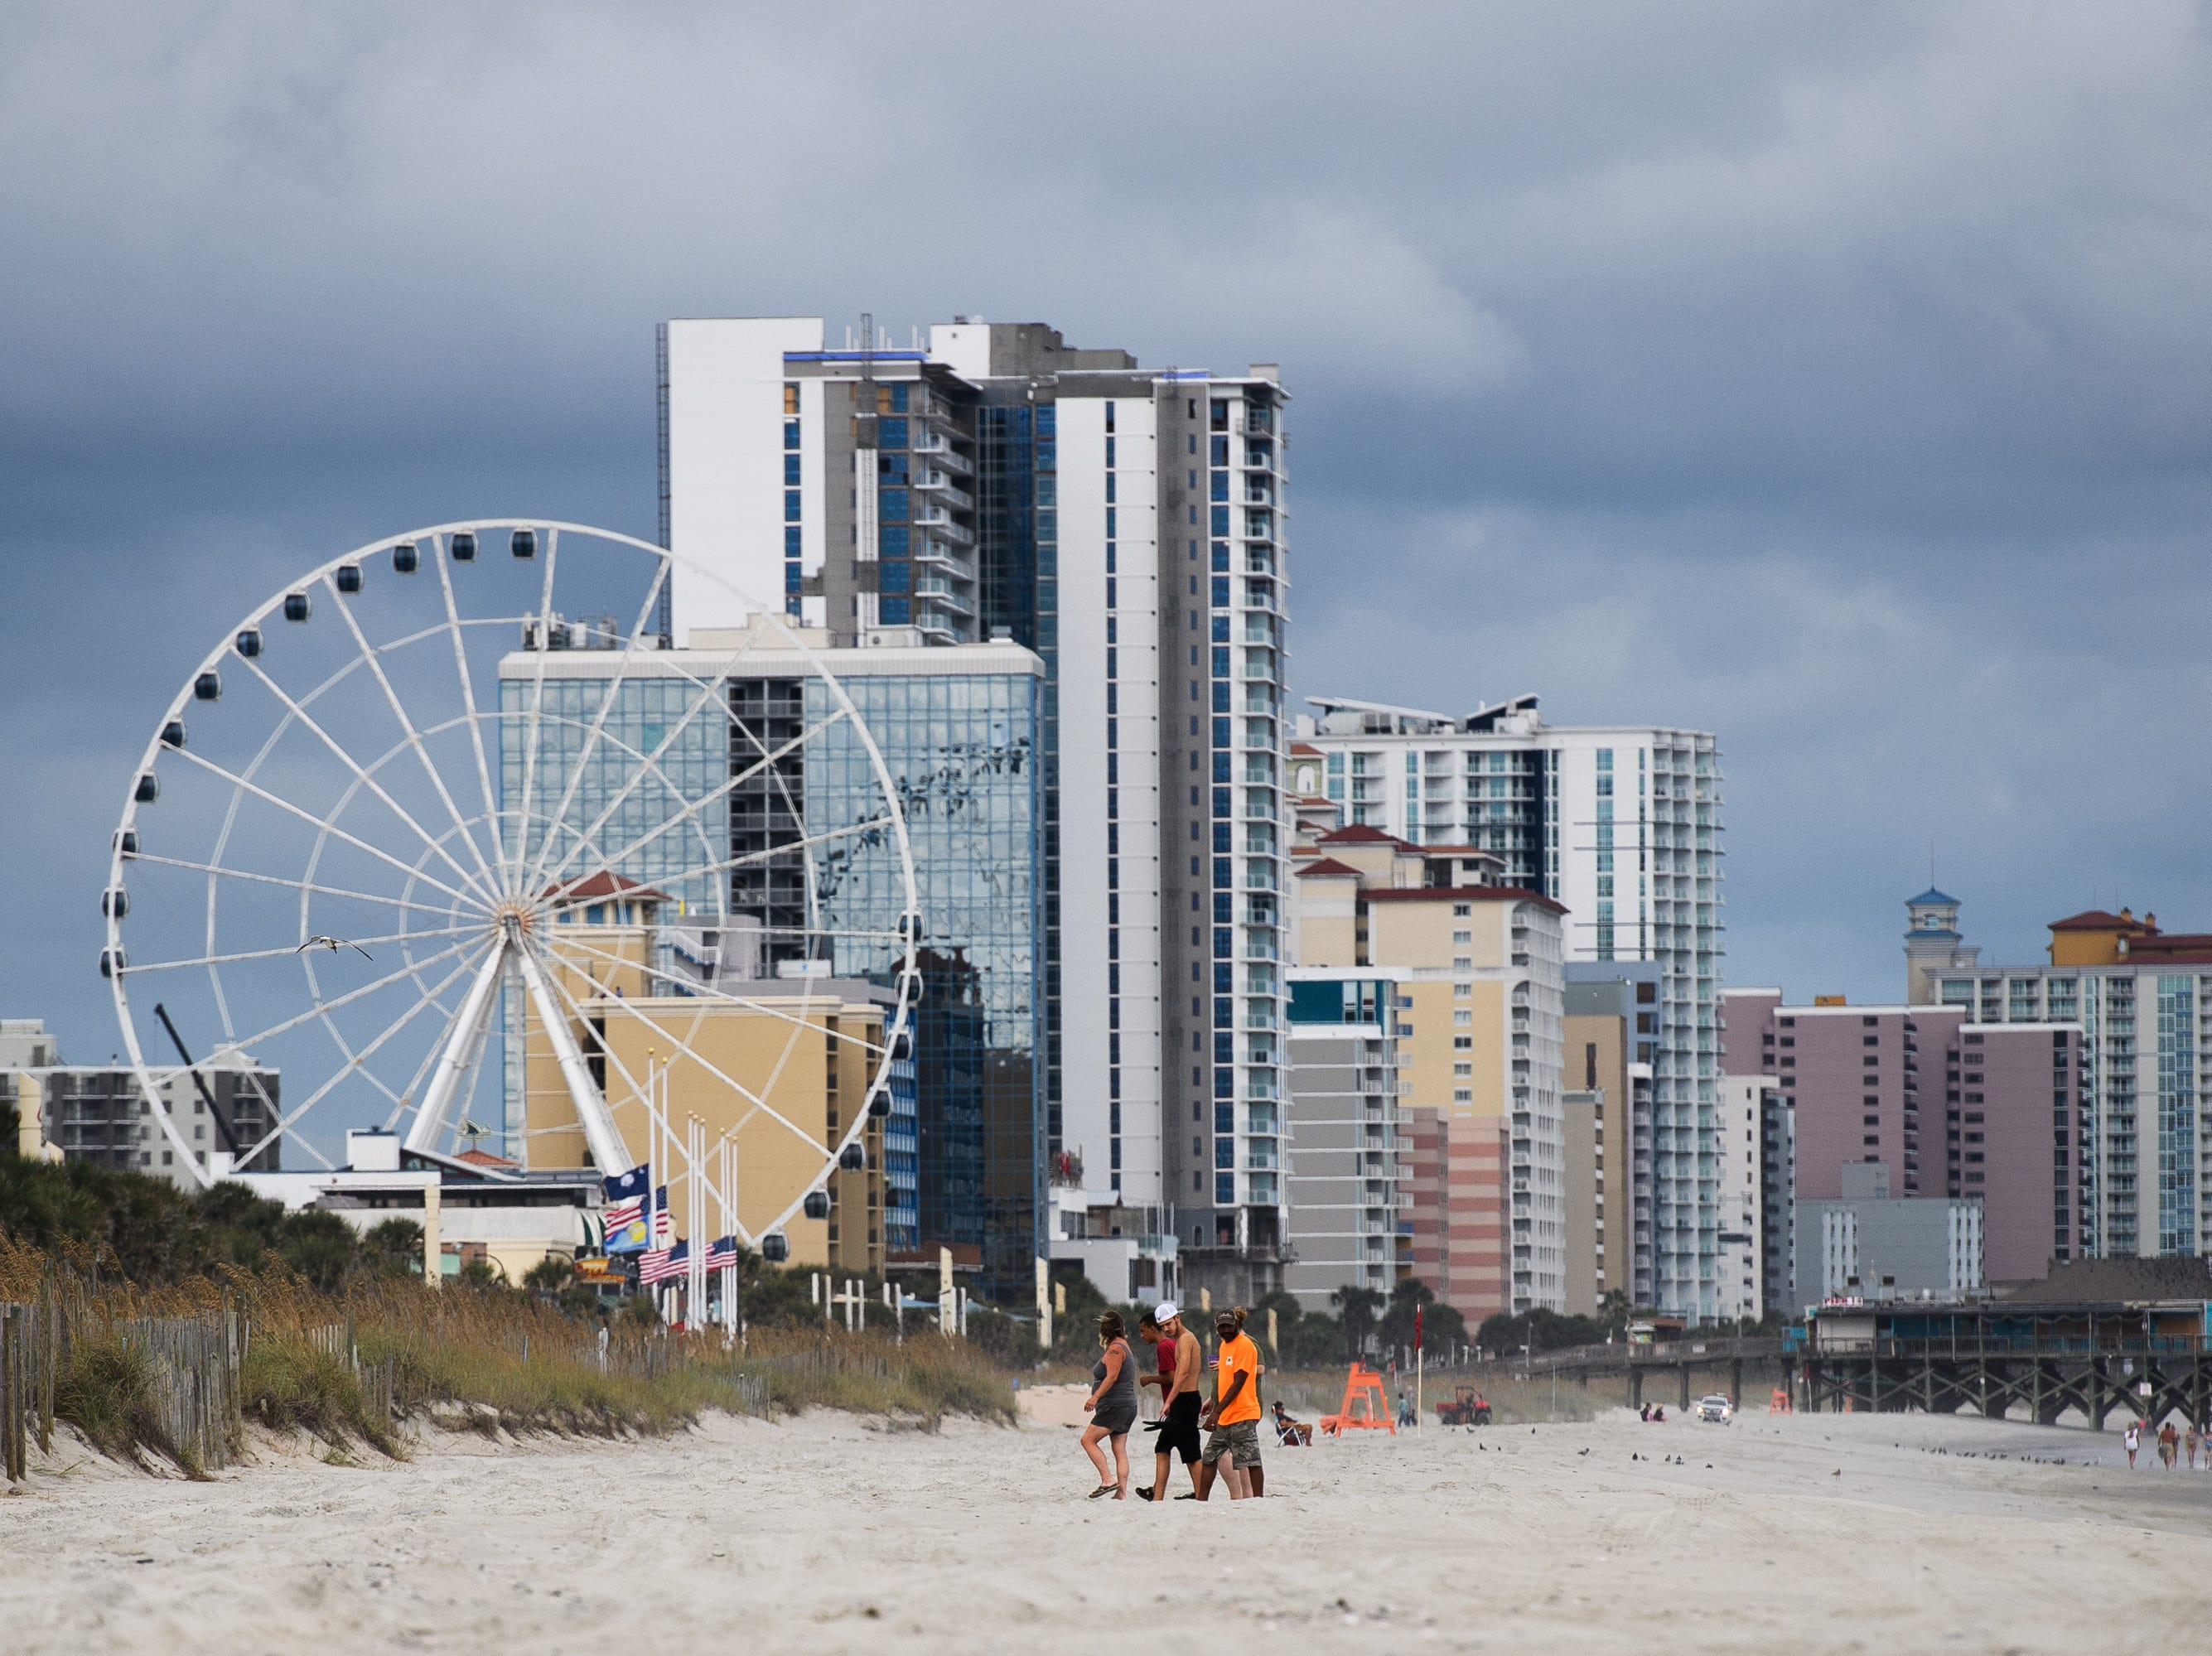 Myrtle Beach residents who stayed in the city the day of the mandatory evacuation enjoy a nearly empty beach days before Hurricane Florence's arrival on Tuesday, Sept. 11, 2018.